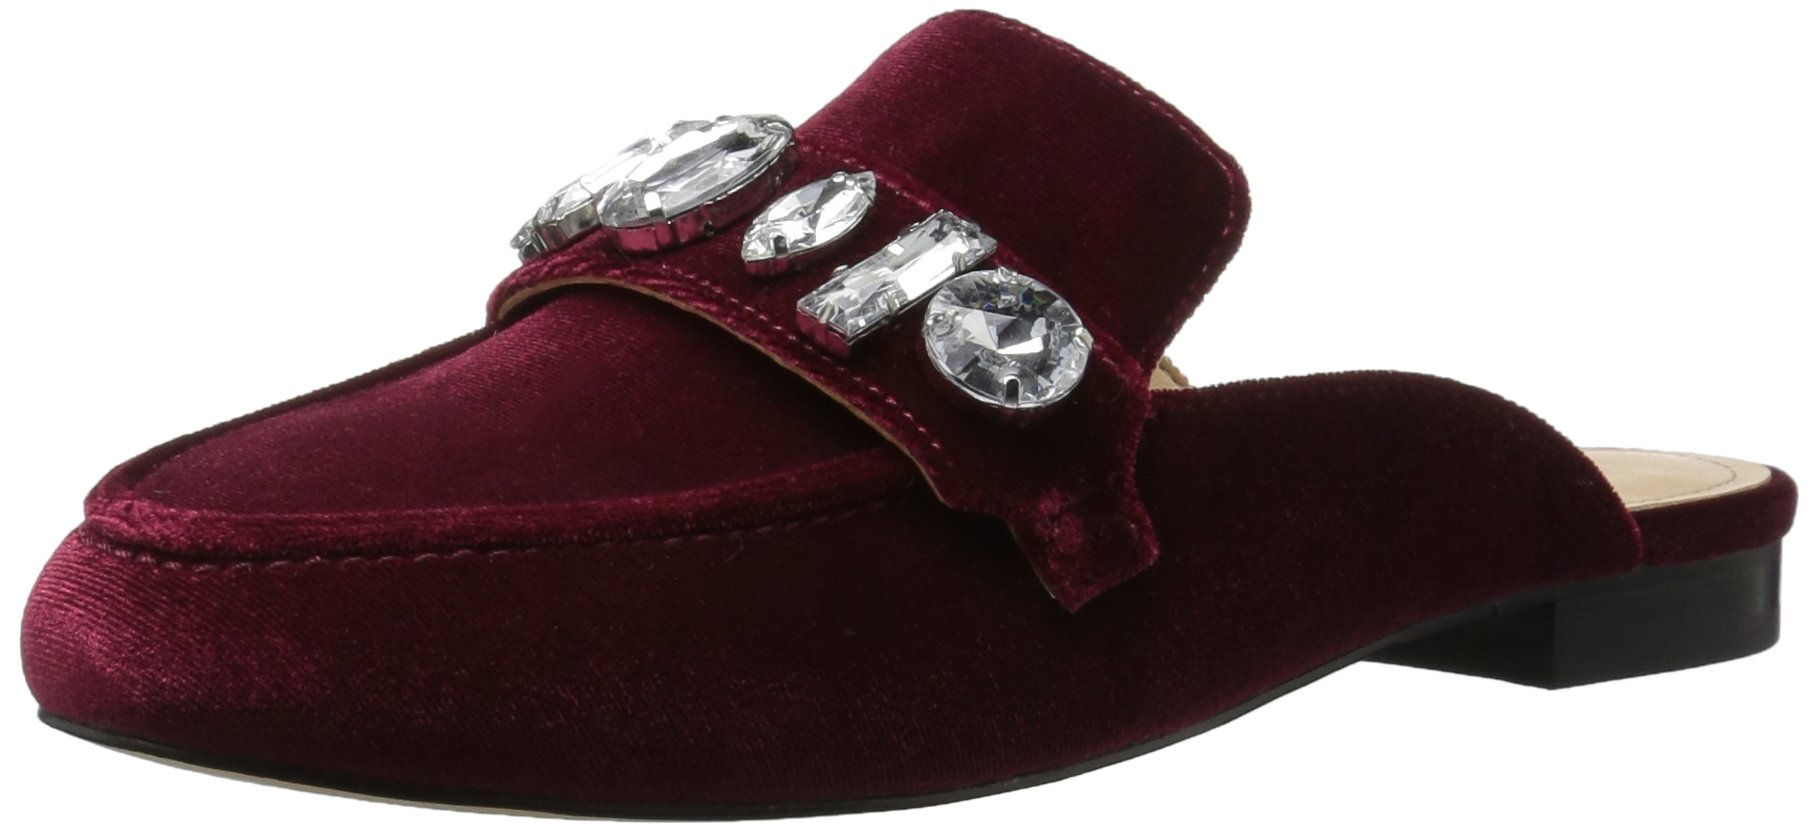 The Fix Women's Francesca Slip-On Loafer with Large Jewels, Bordeaux, 8.5 B US